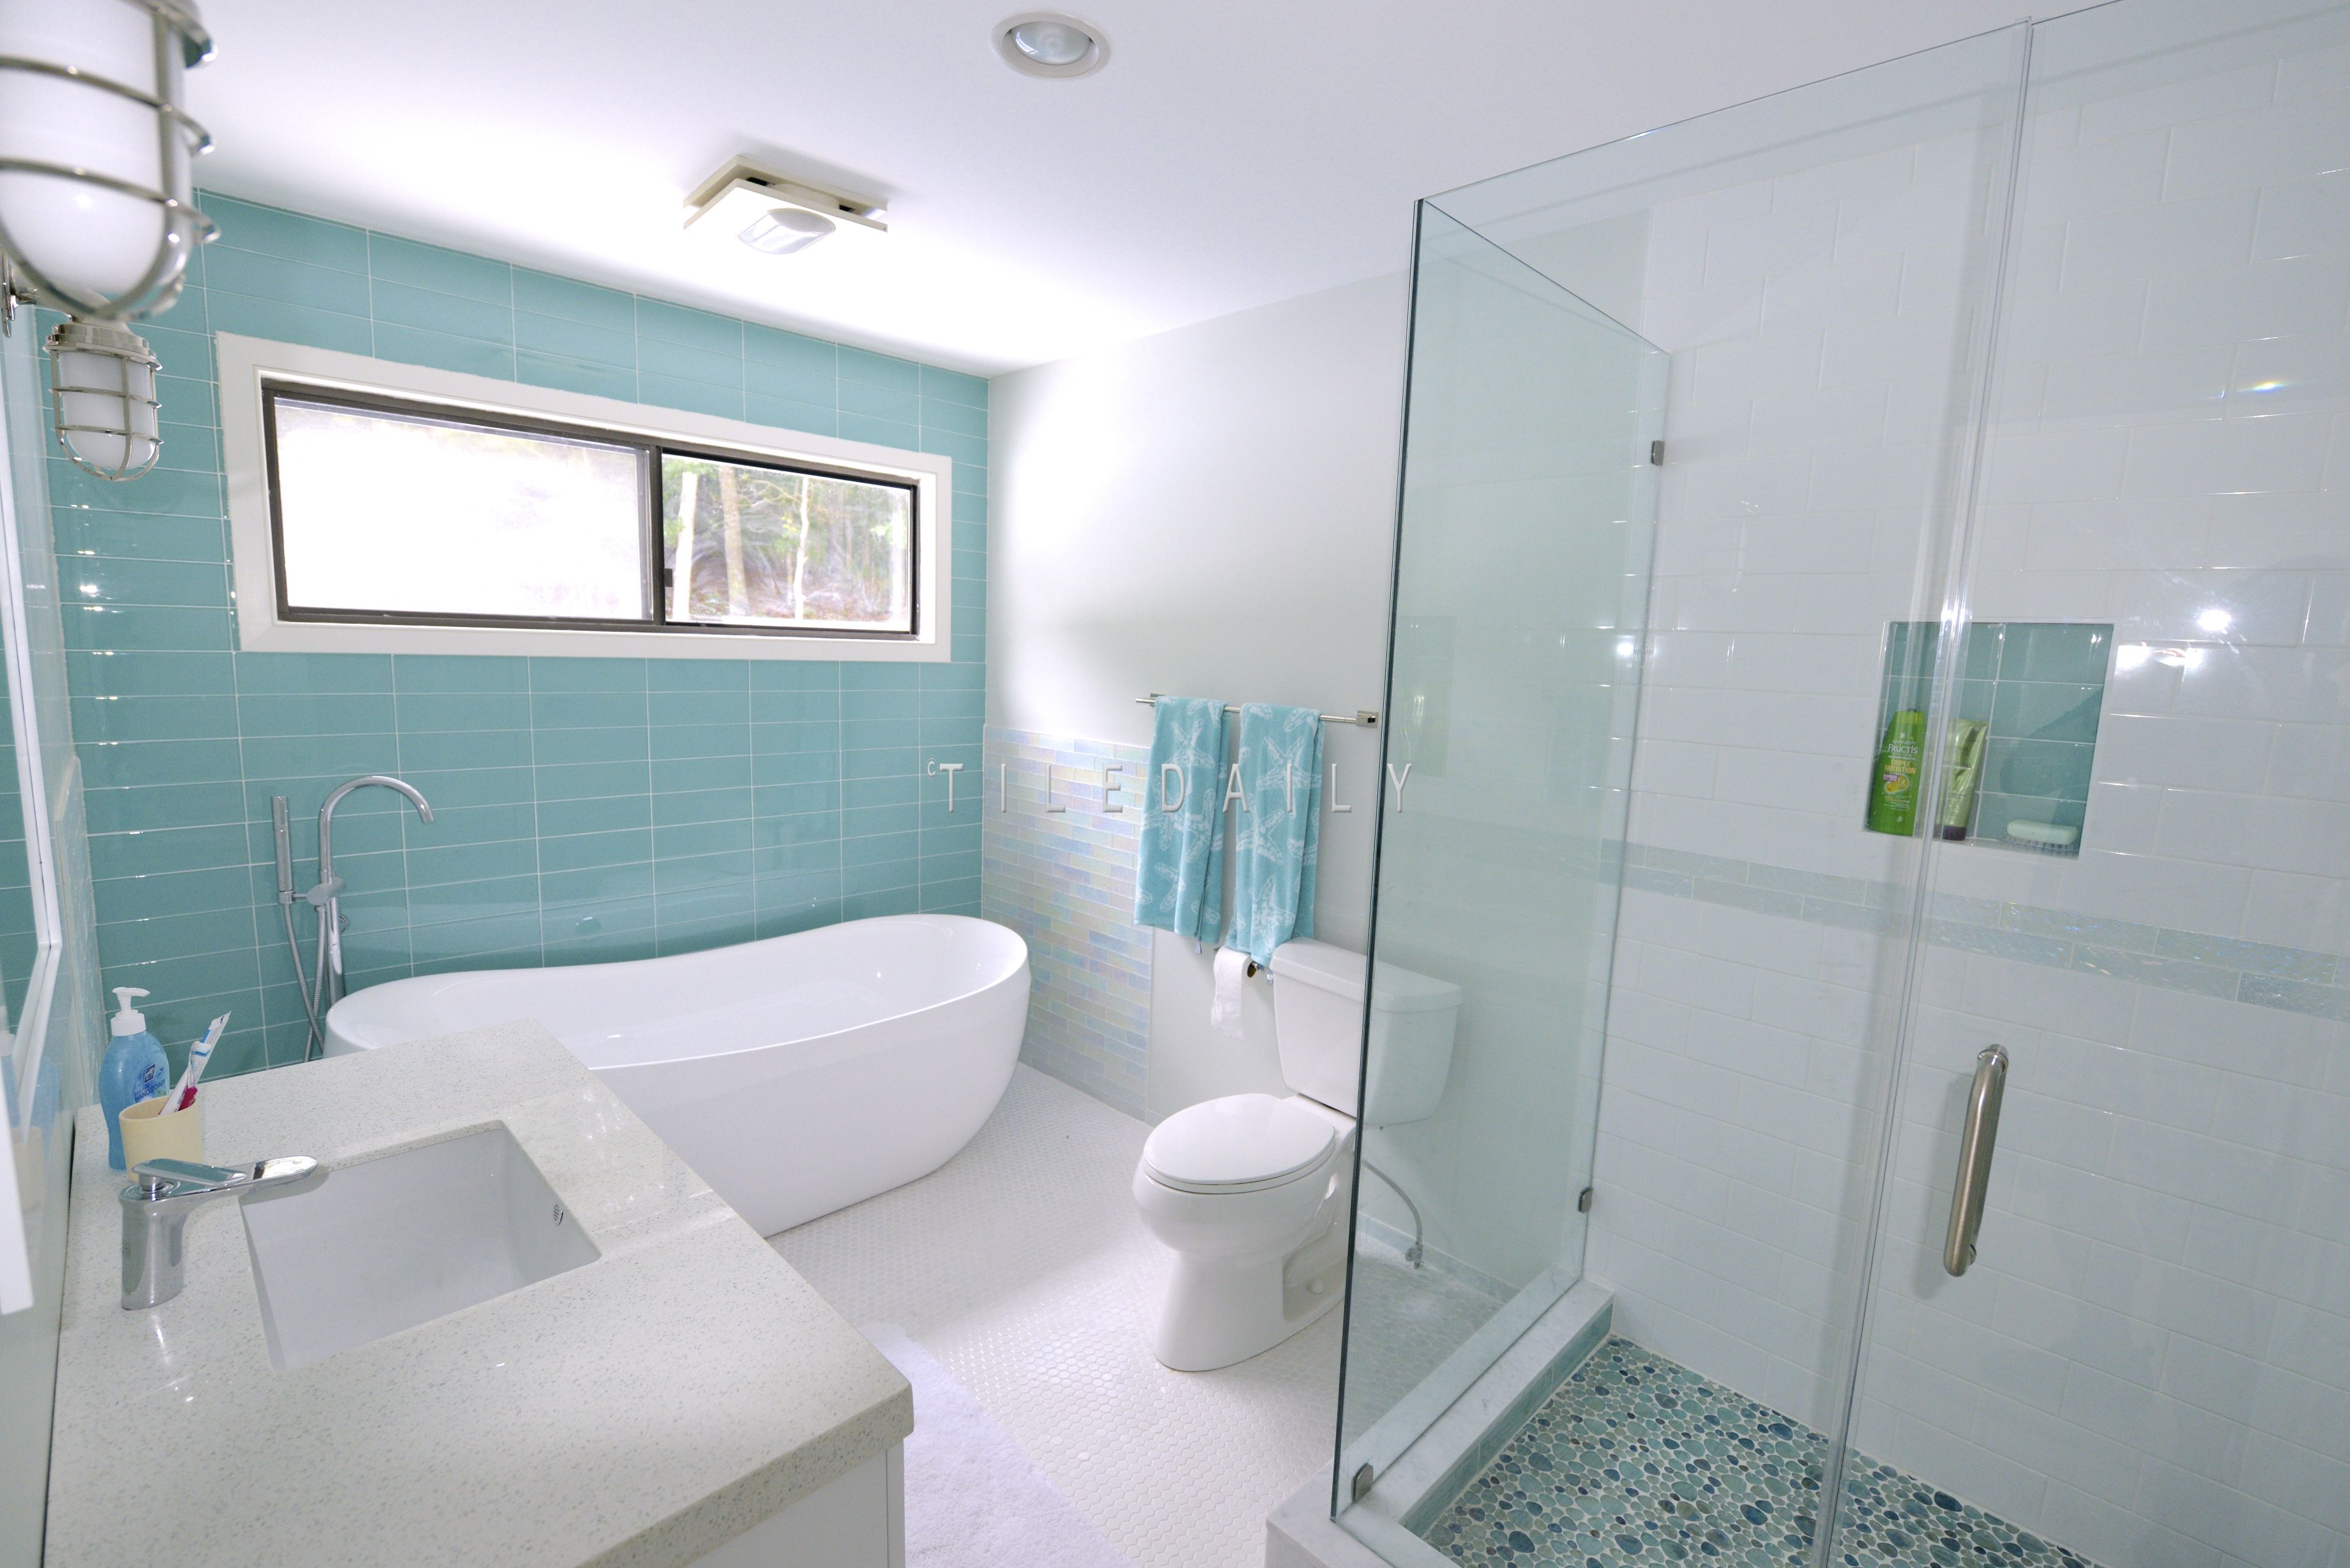 Glass Subway Tile, 3x12 | Coastal, Commercial and Walls